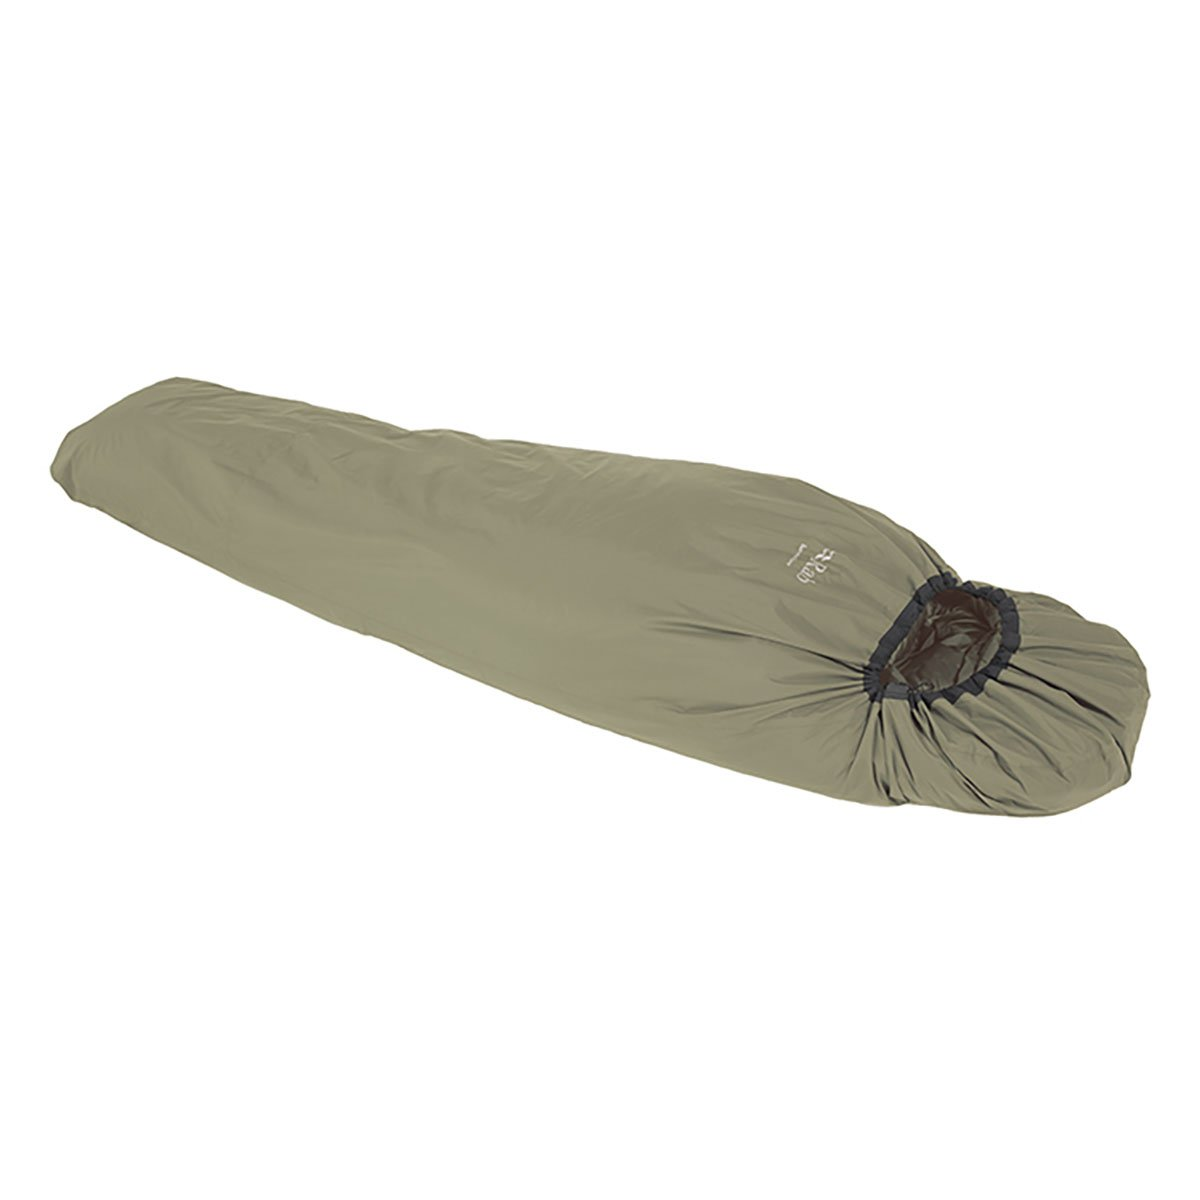 Rab Survival Zone Bivi Olive One Size MR-53-OL